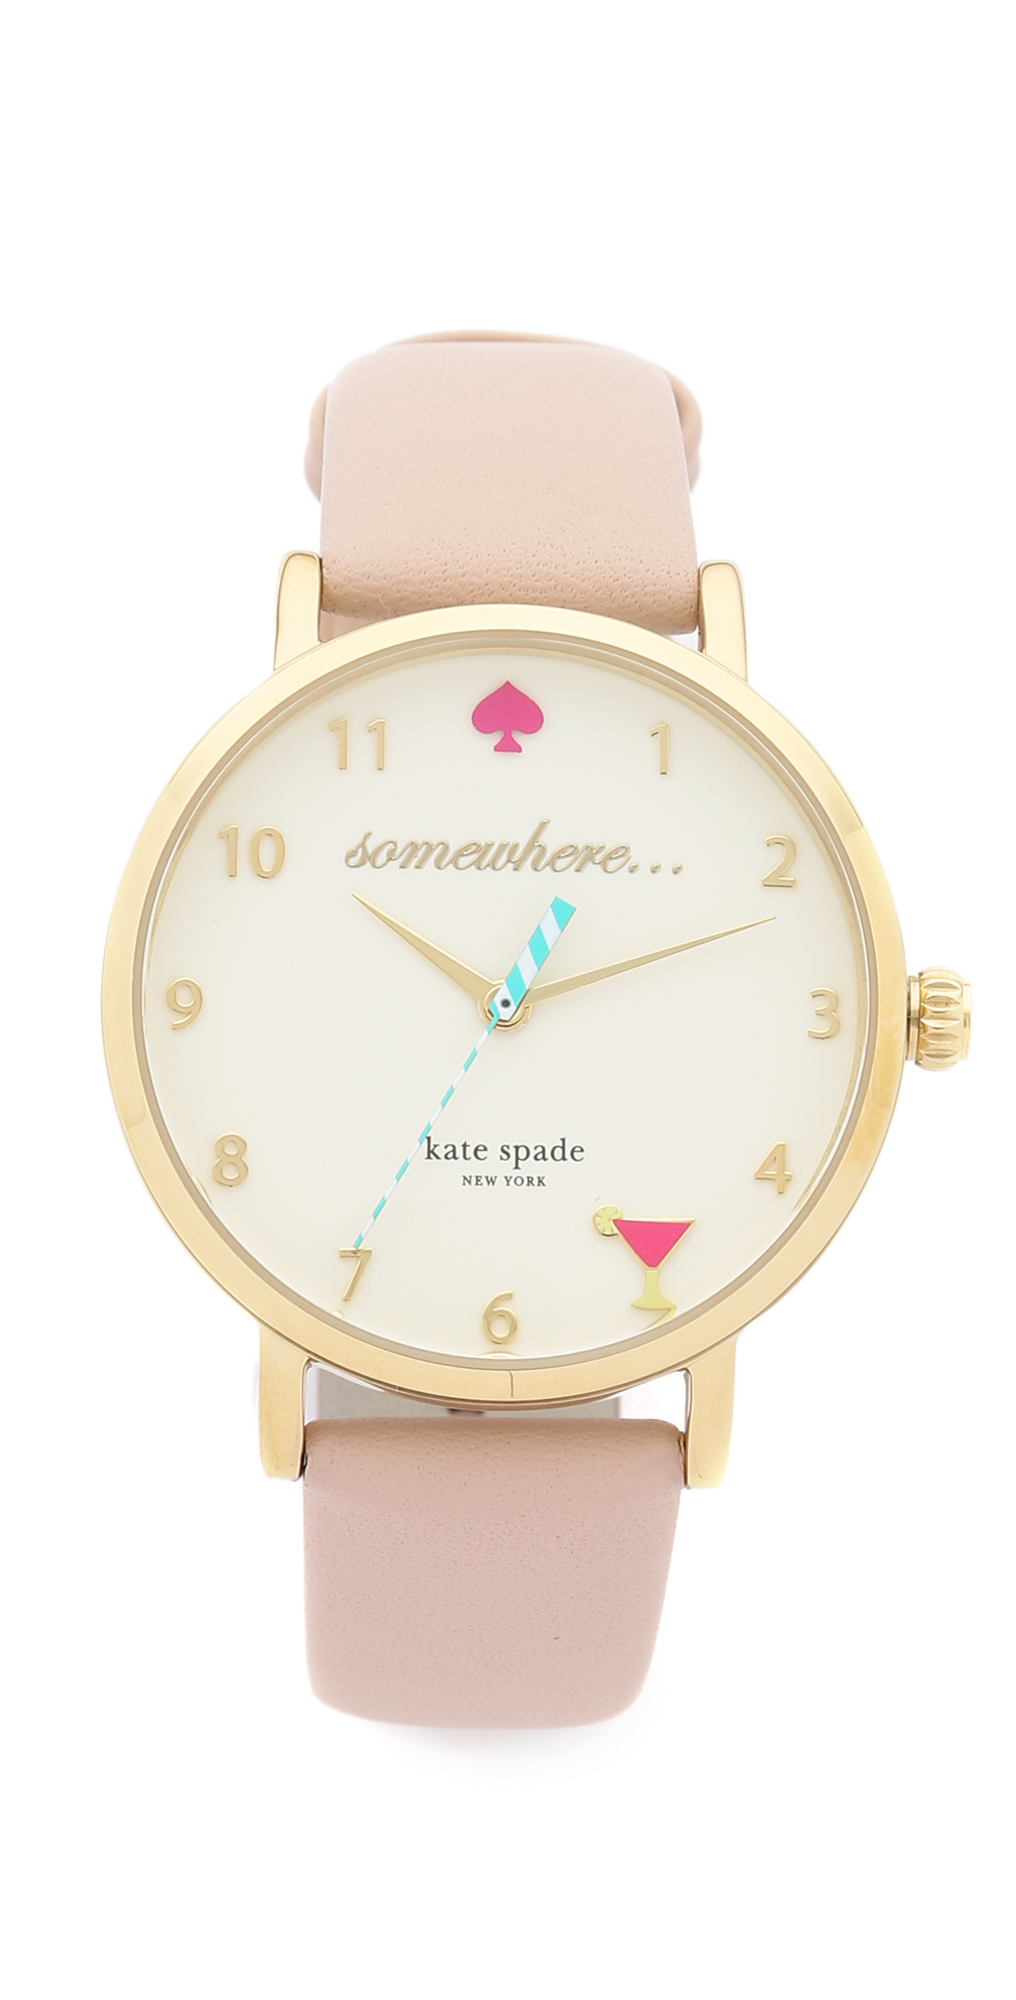 5 O'Clock Metro Leather Watch Kate Spade New York